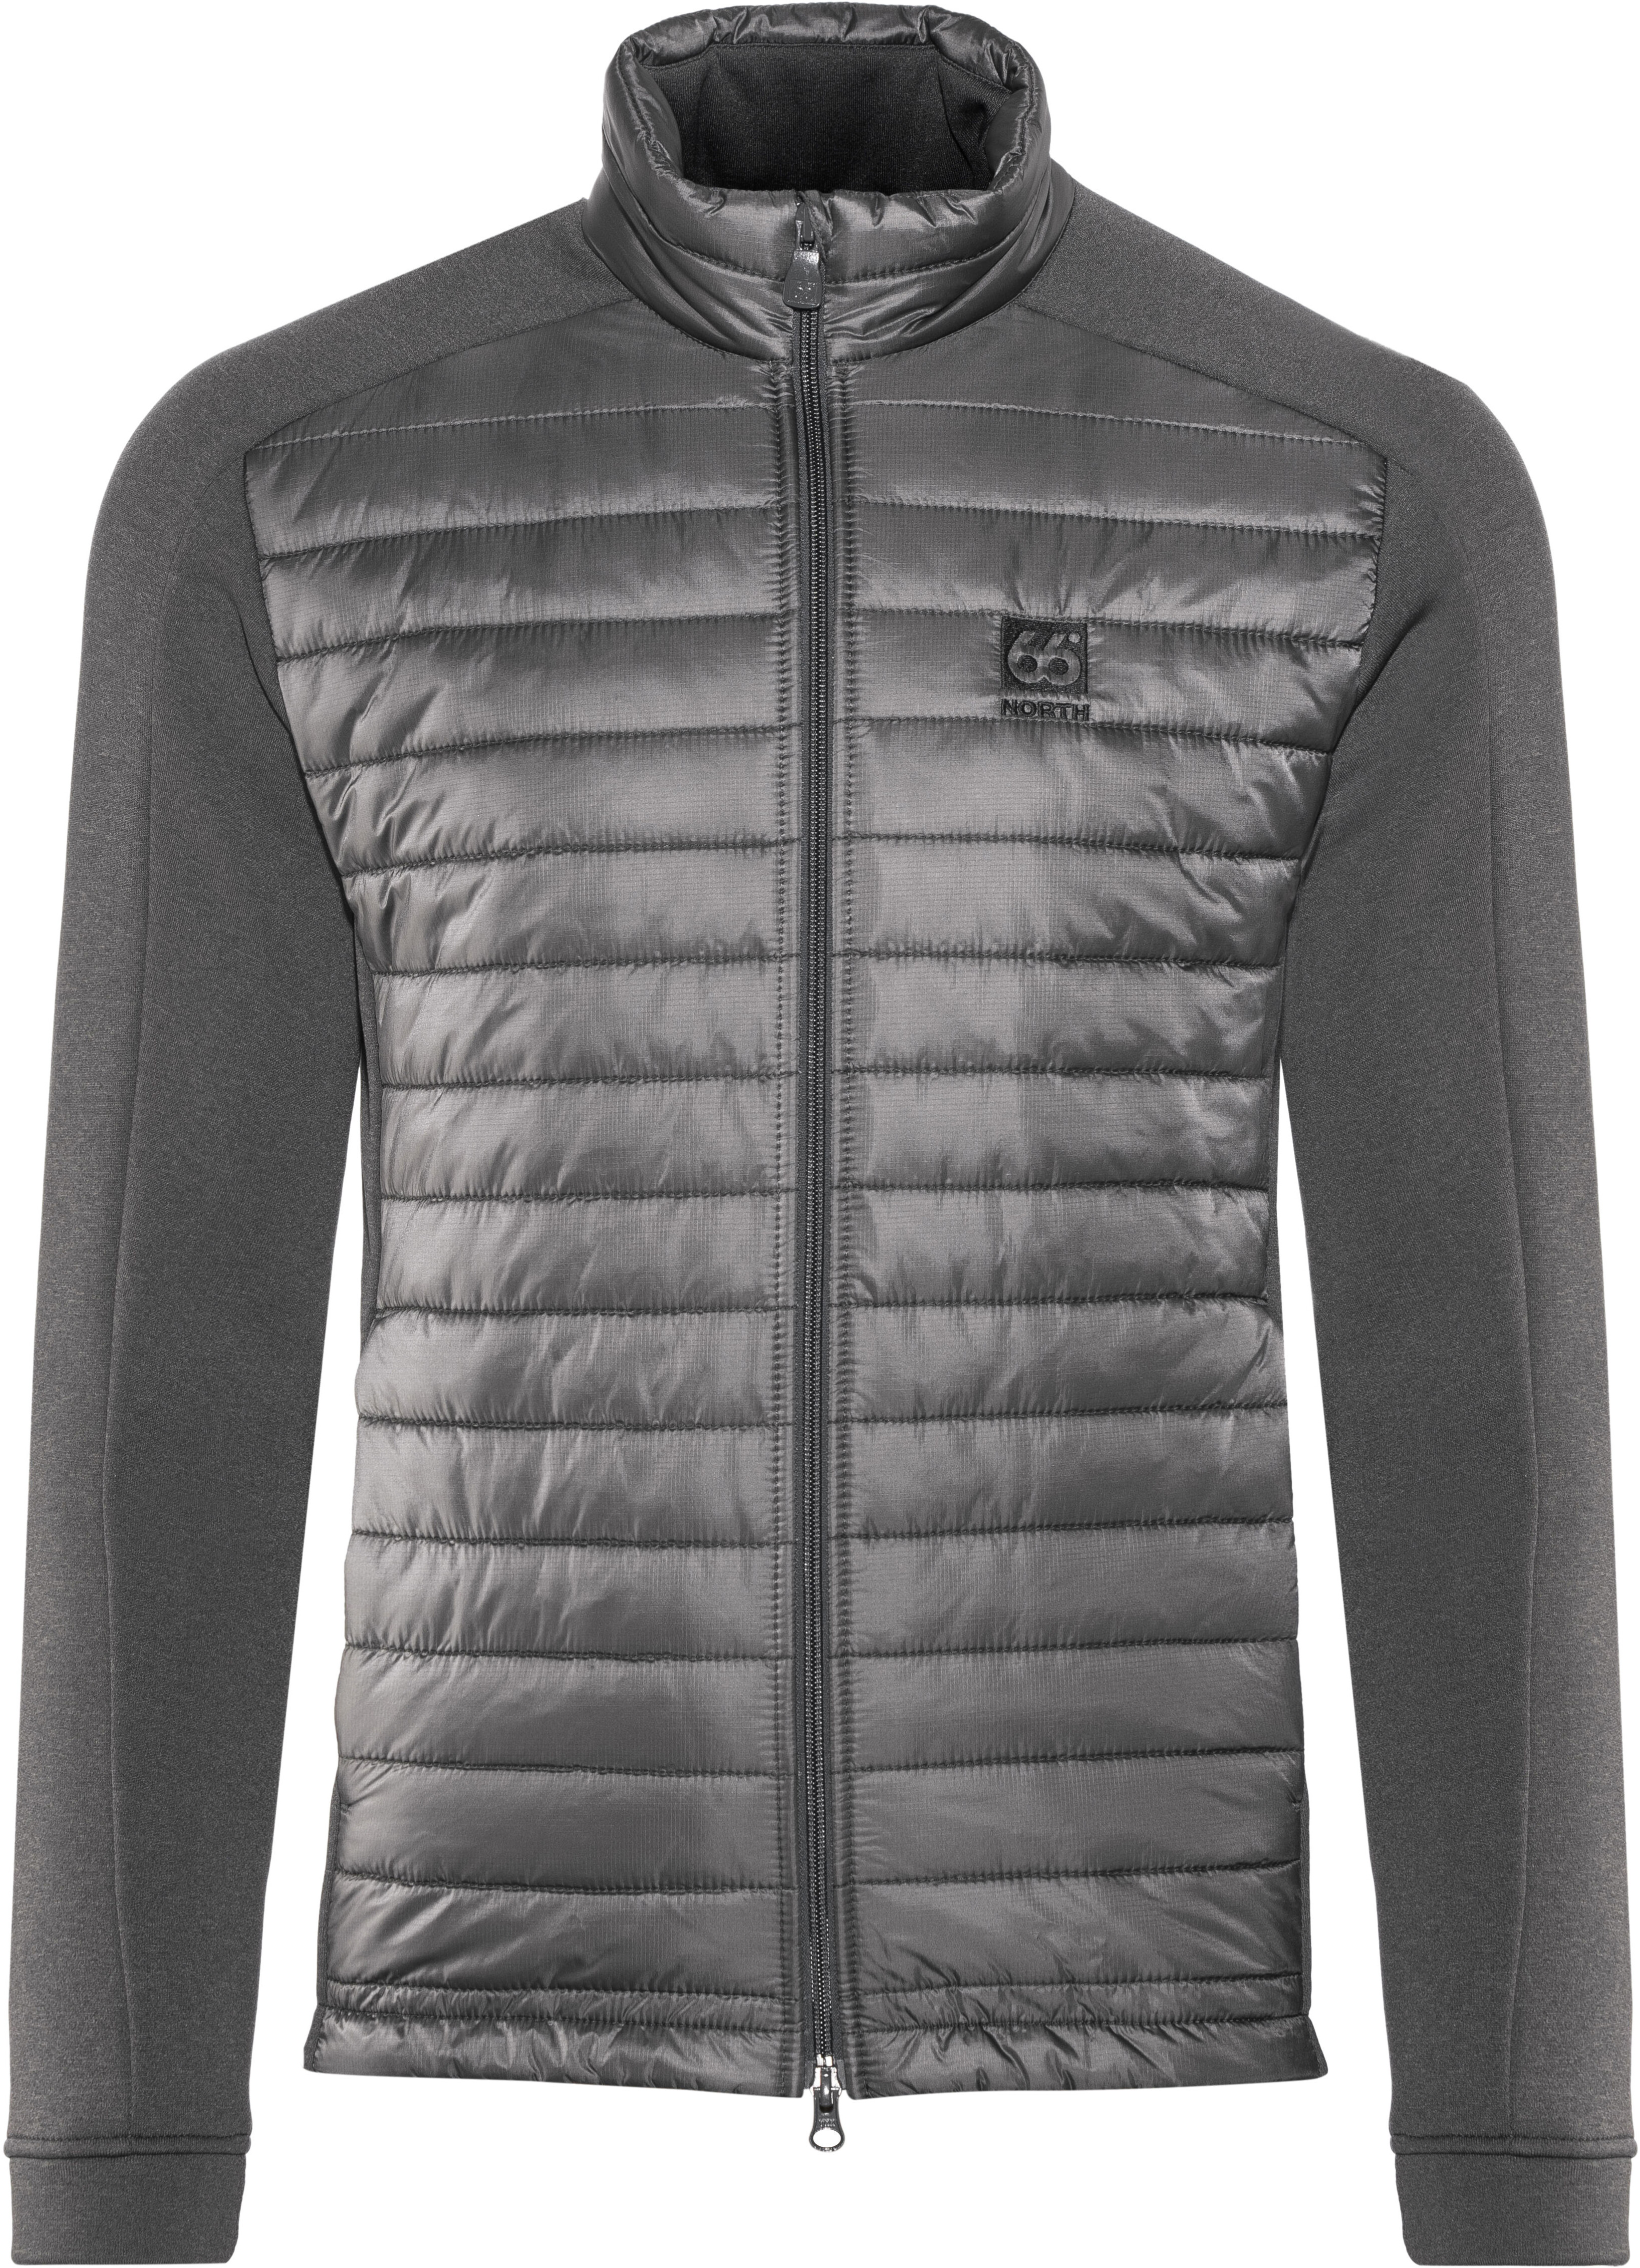 adcb84c3 66° North Oxi Jacket Men charcoal at Addnature.co.uk